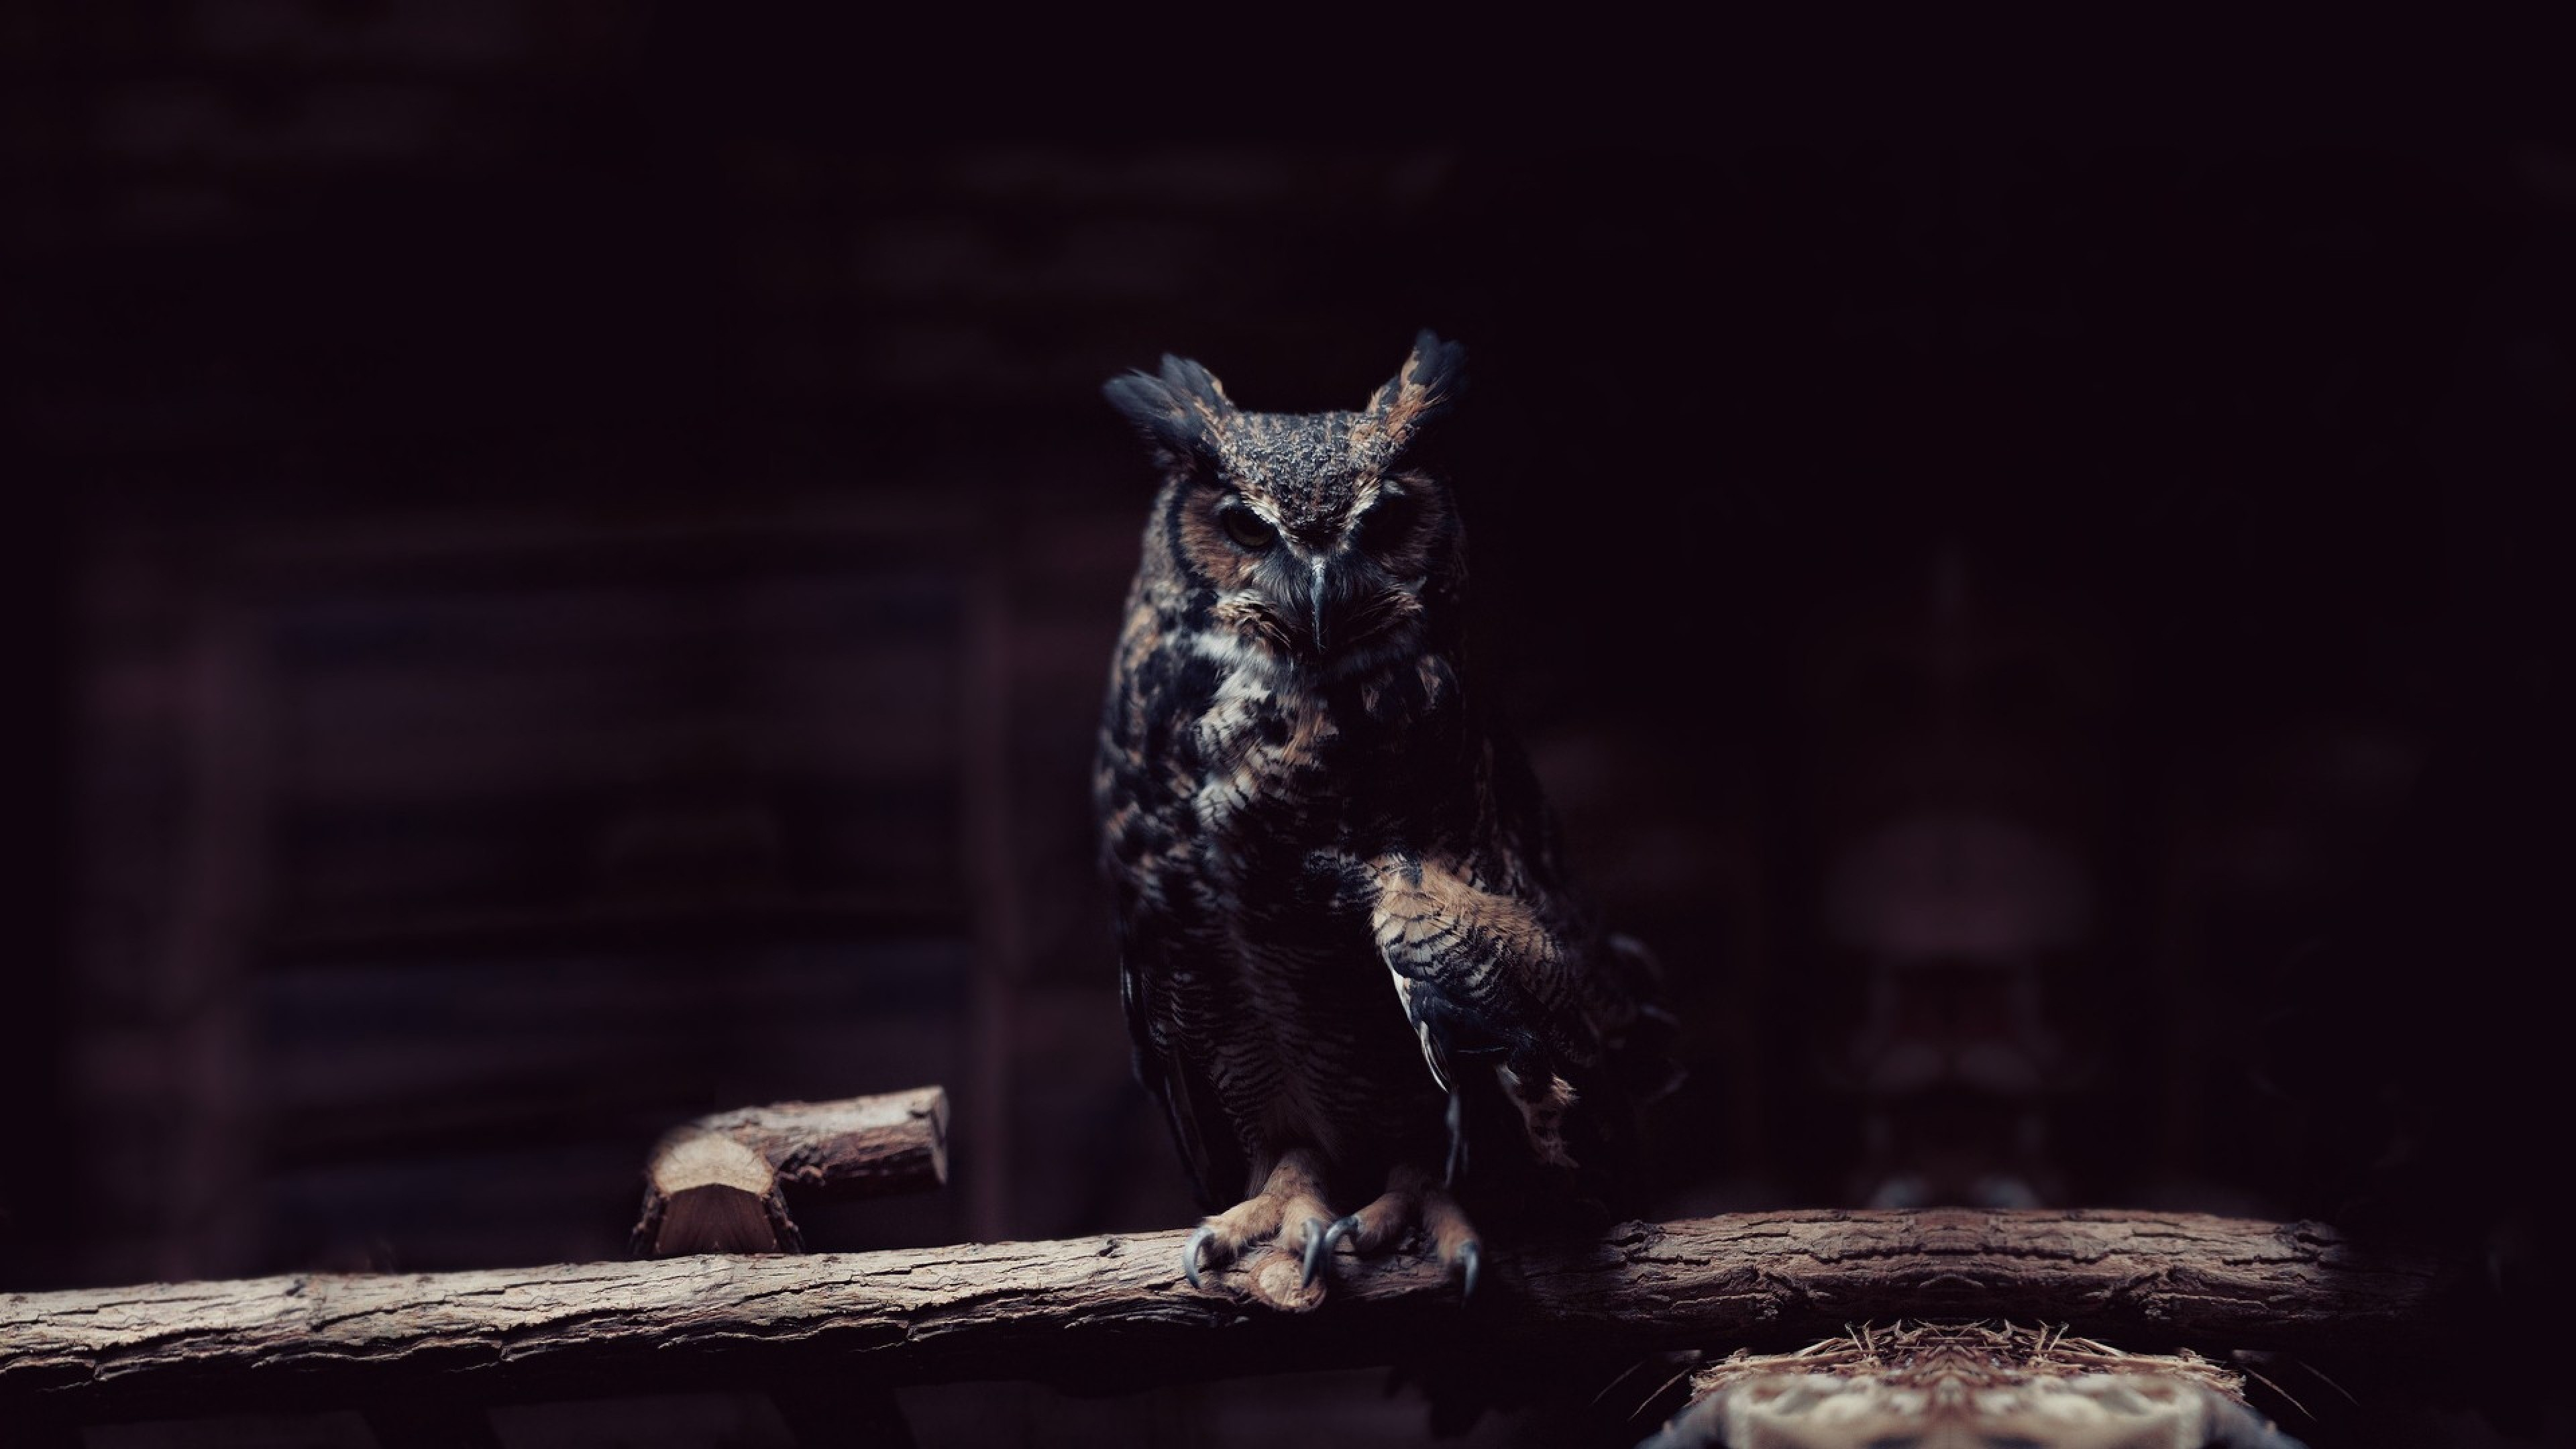 Mobile Free Owl Wallpaper Download Wallpaper And Background Animals Town  Cute Owl Wallpapers. Original Resolution px